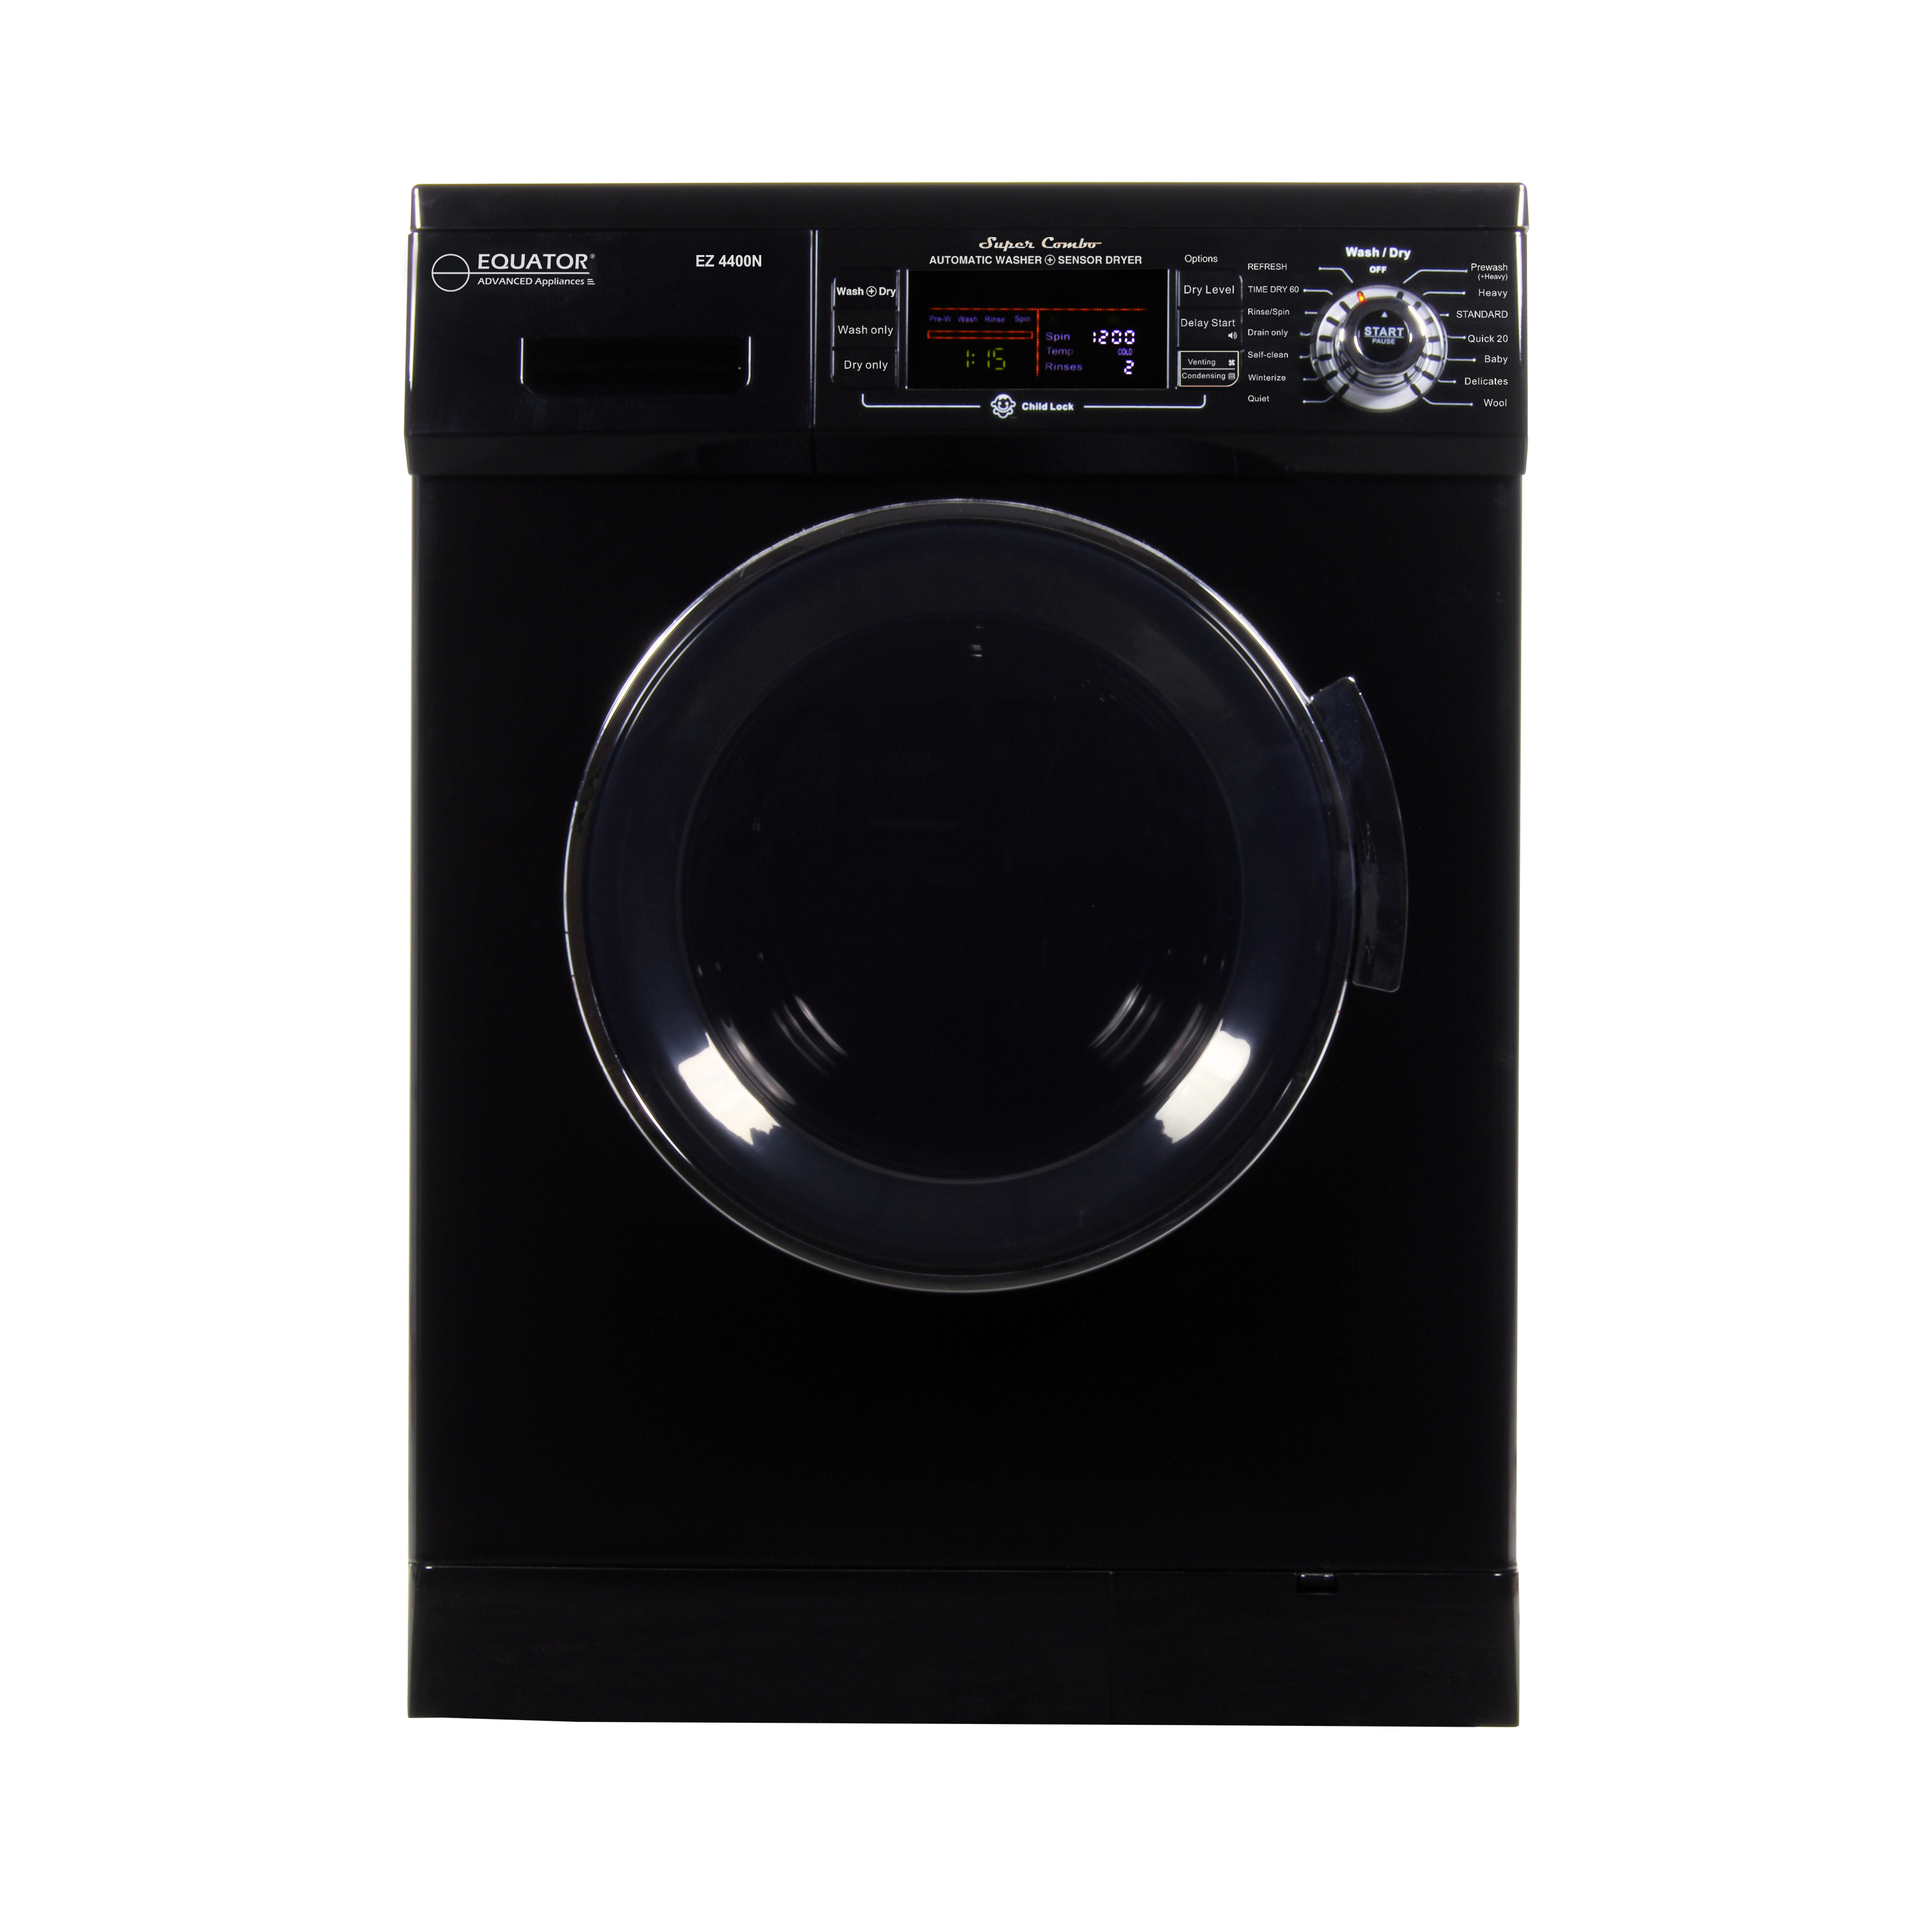 All-in-one 1200 RPM New 2019 Version Compact Convertible Combo Washer Dryer with Fully Digital Control Panel in Black